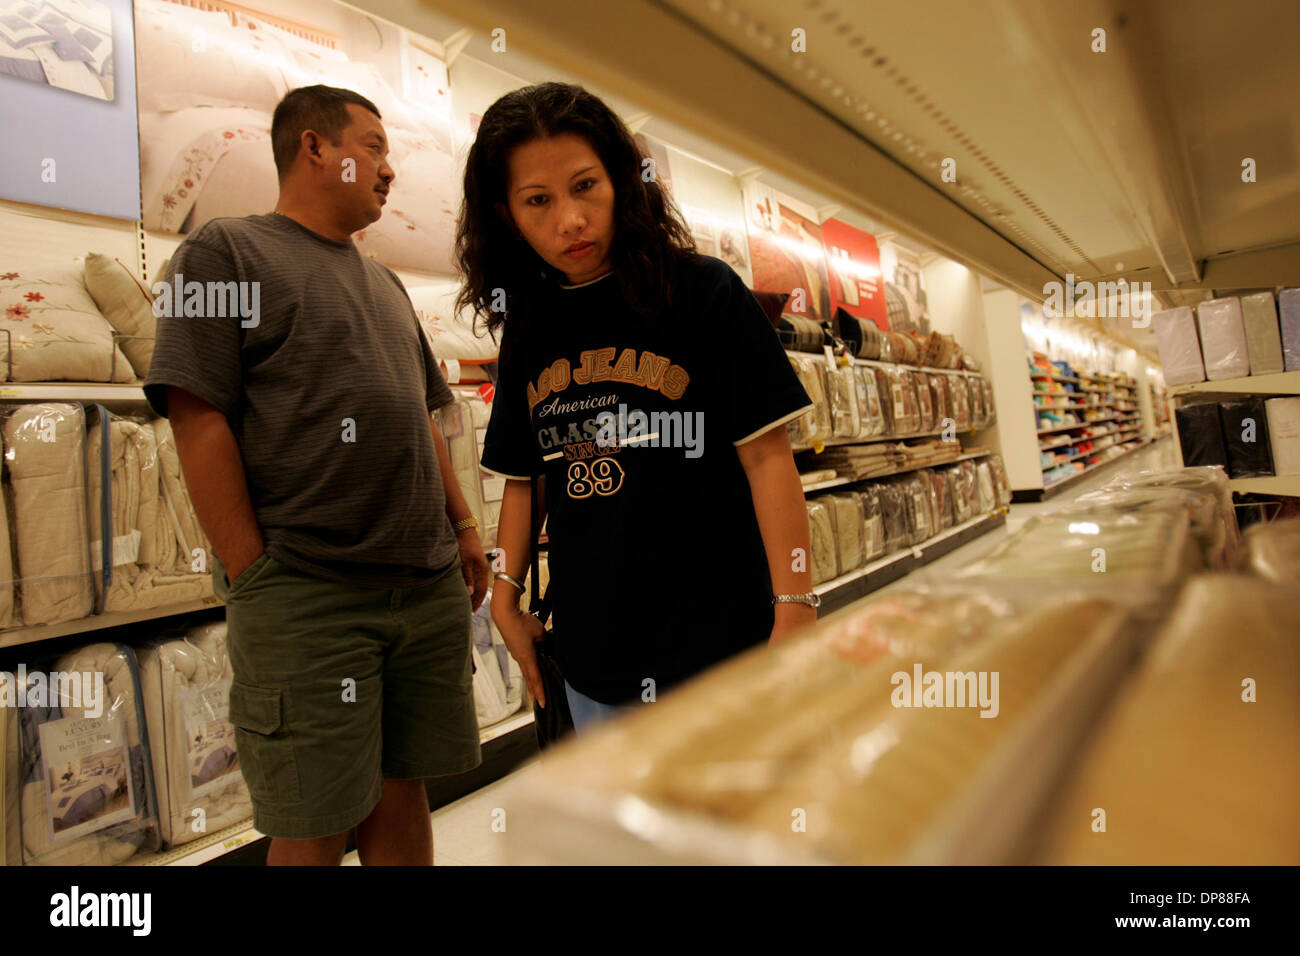 (Published 9/29/2005, B-2:2; B-10:1) Julieto, left, and Jean Apelacion (cq) are a bit overwhelmed at the choices as they shop Wednesday afternoon for linens. The family is being sponsored by the Church of St. Luke in El Cajon, who bought the bedding and towels for them. Peggy Peattie photo - Stock Image